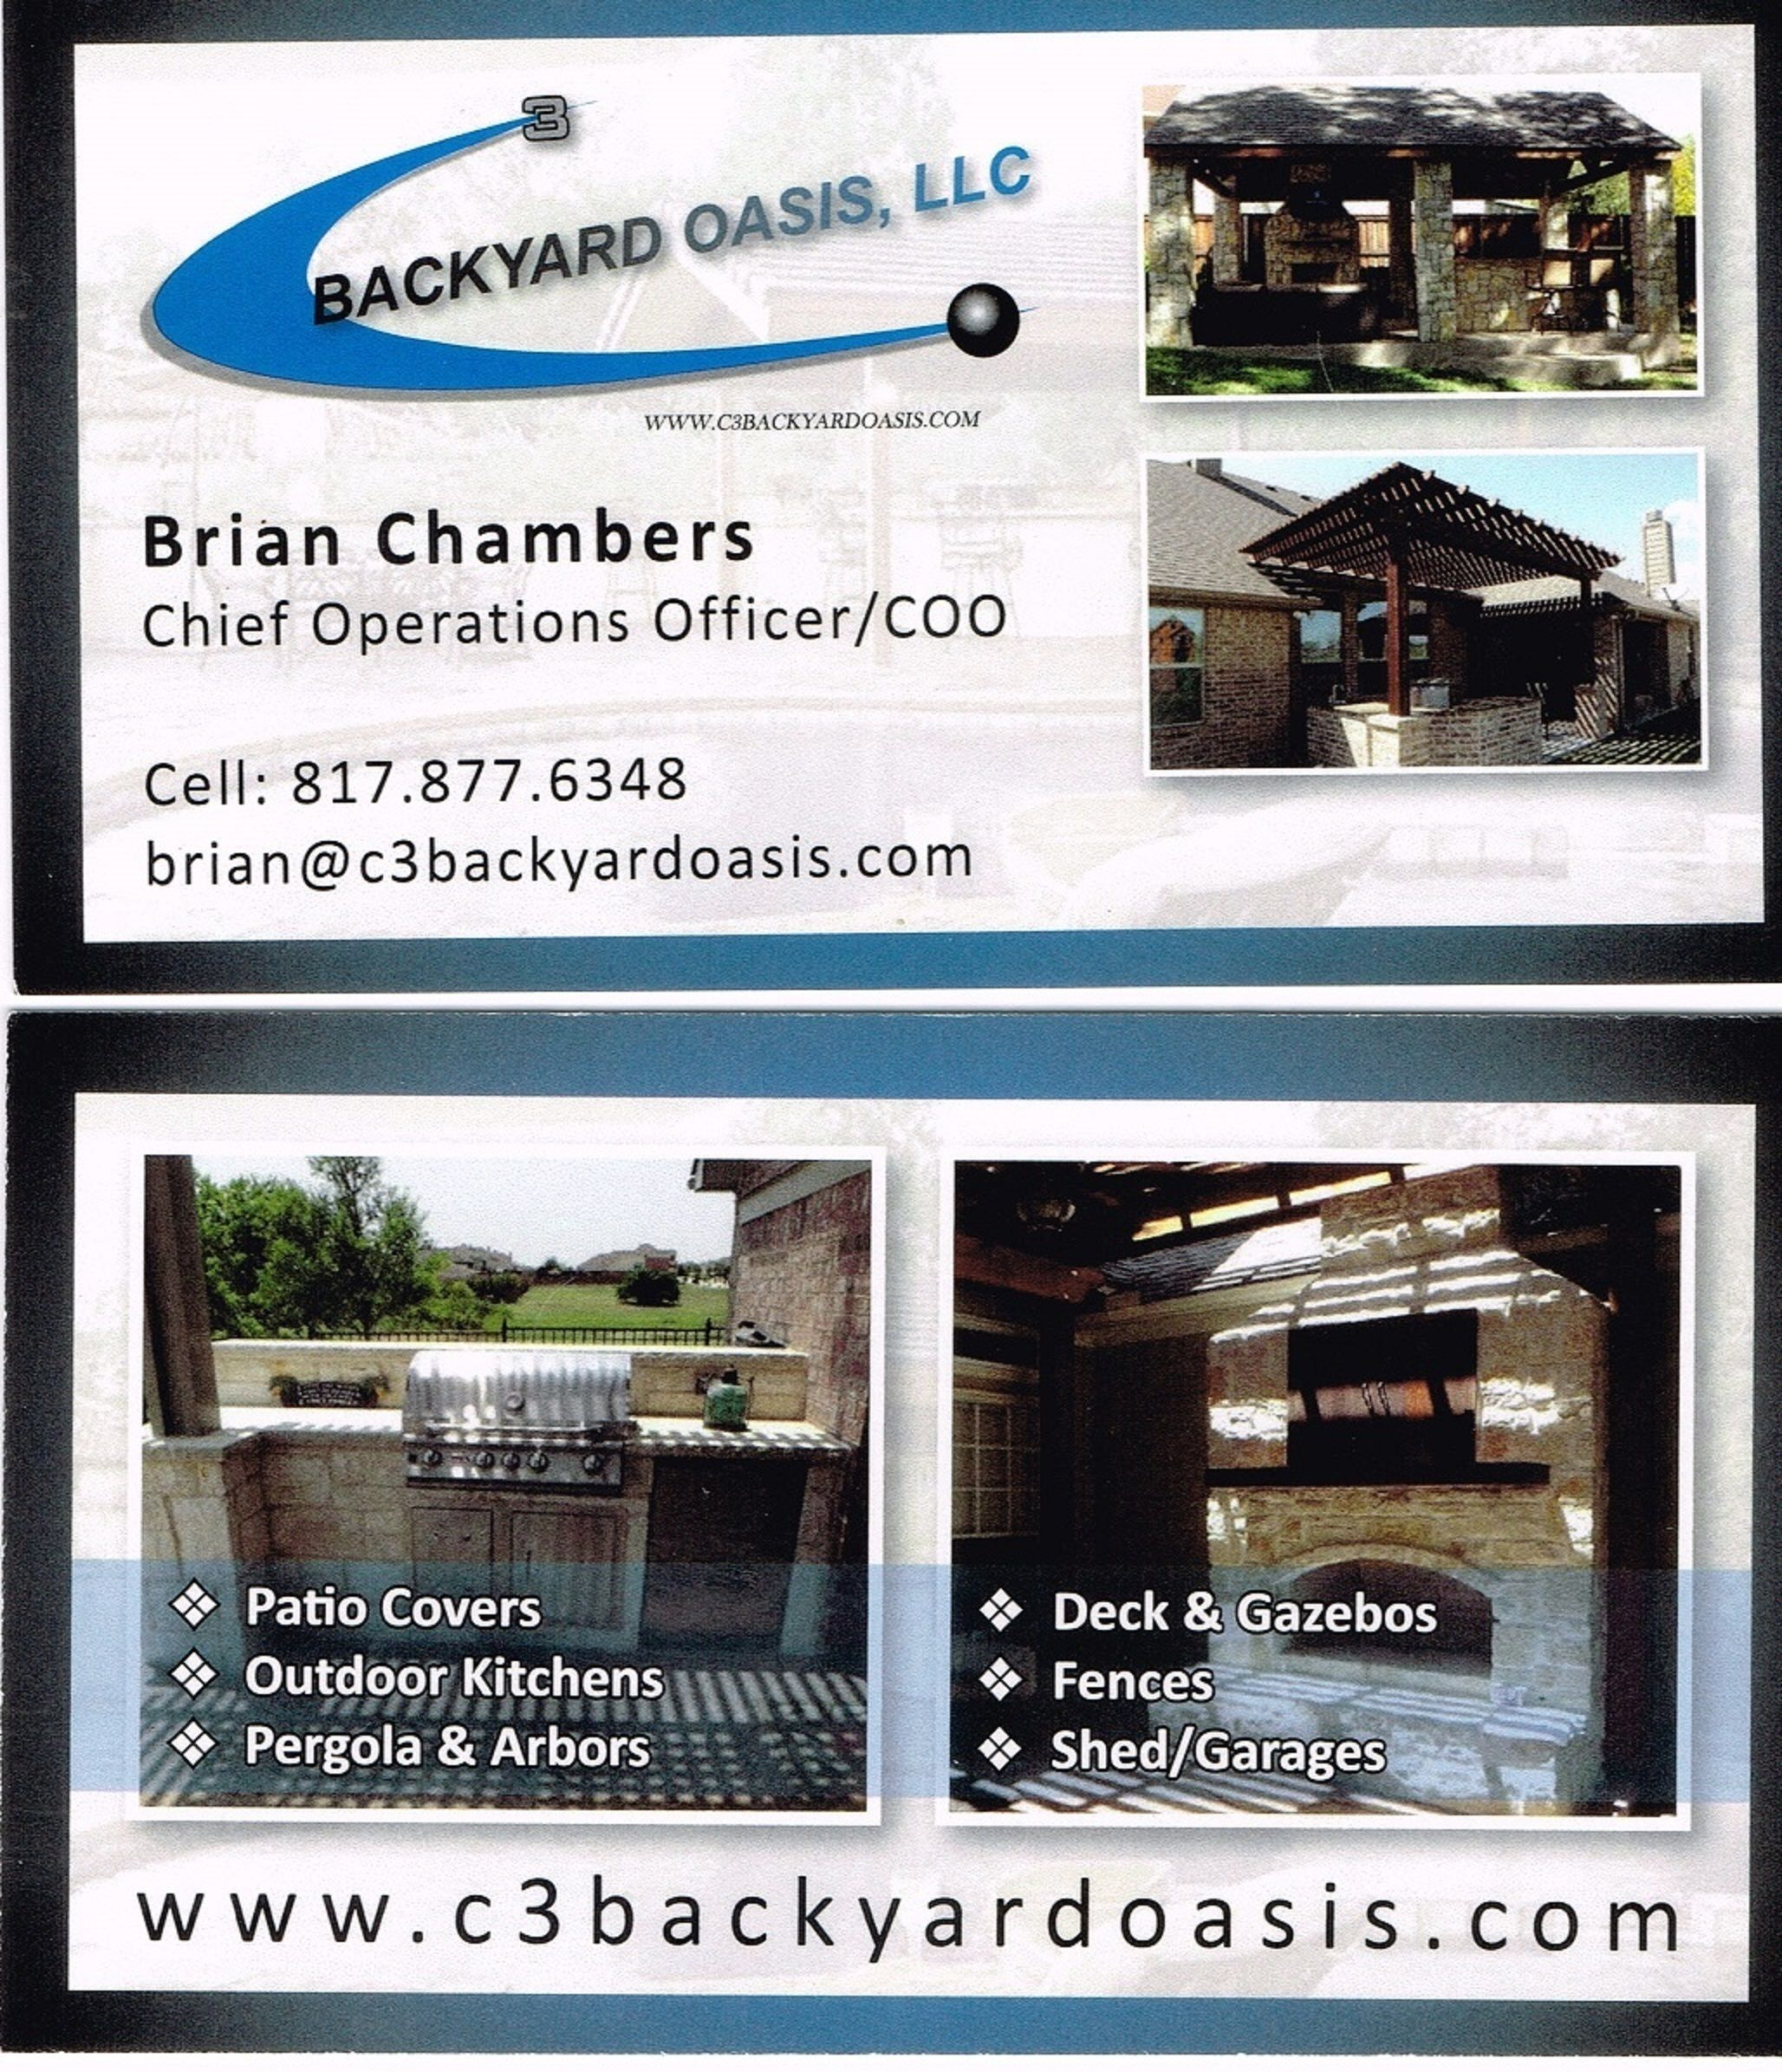 C3 Backyard Oasis Llc Cheif Officer Of Operations Brian S